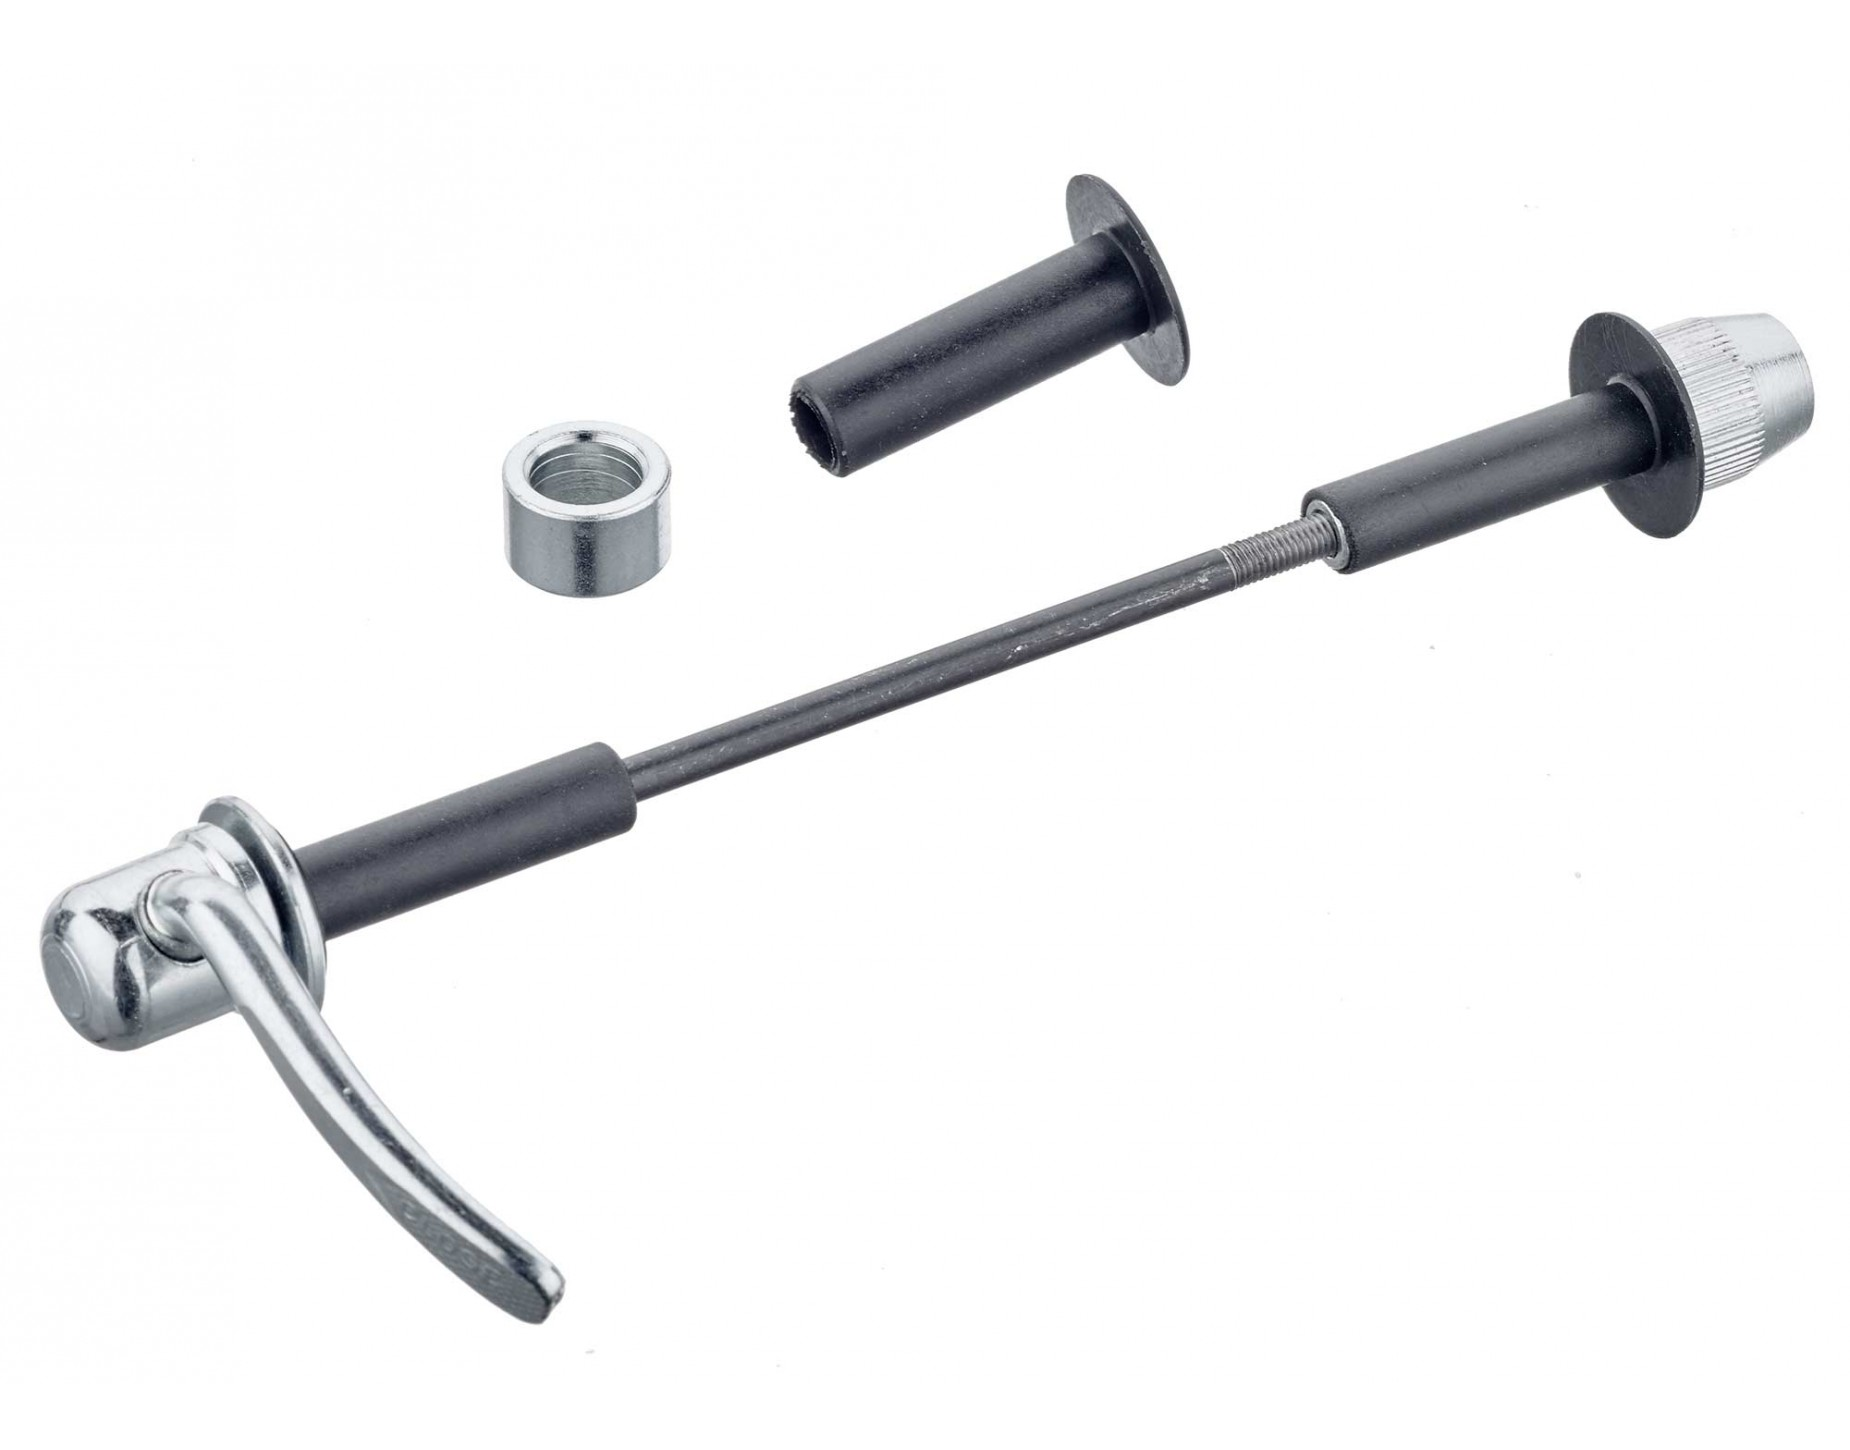 Elite Thru Axle Adapter 10 12 Mm For Hometrainer Everything You Need